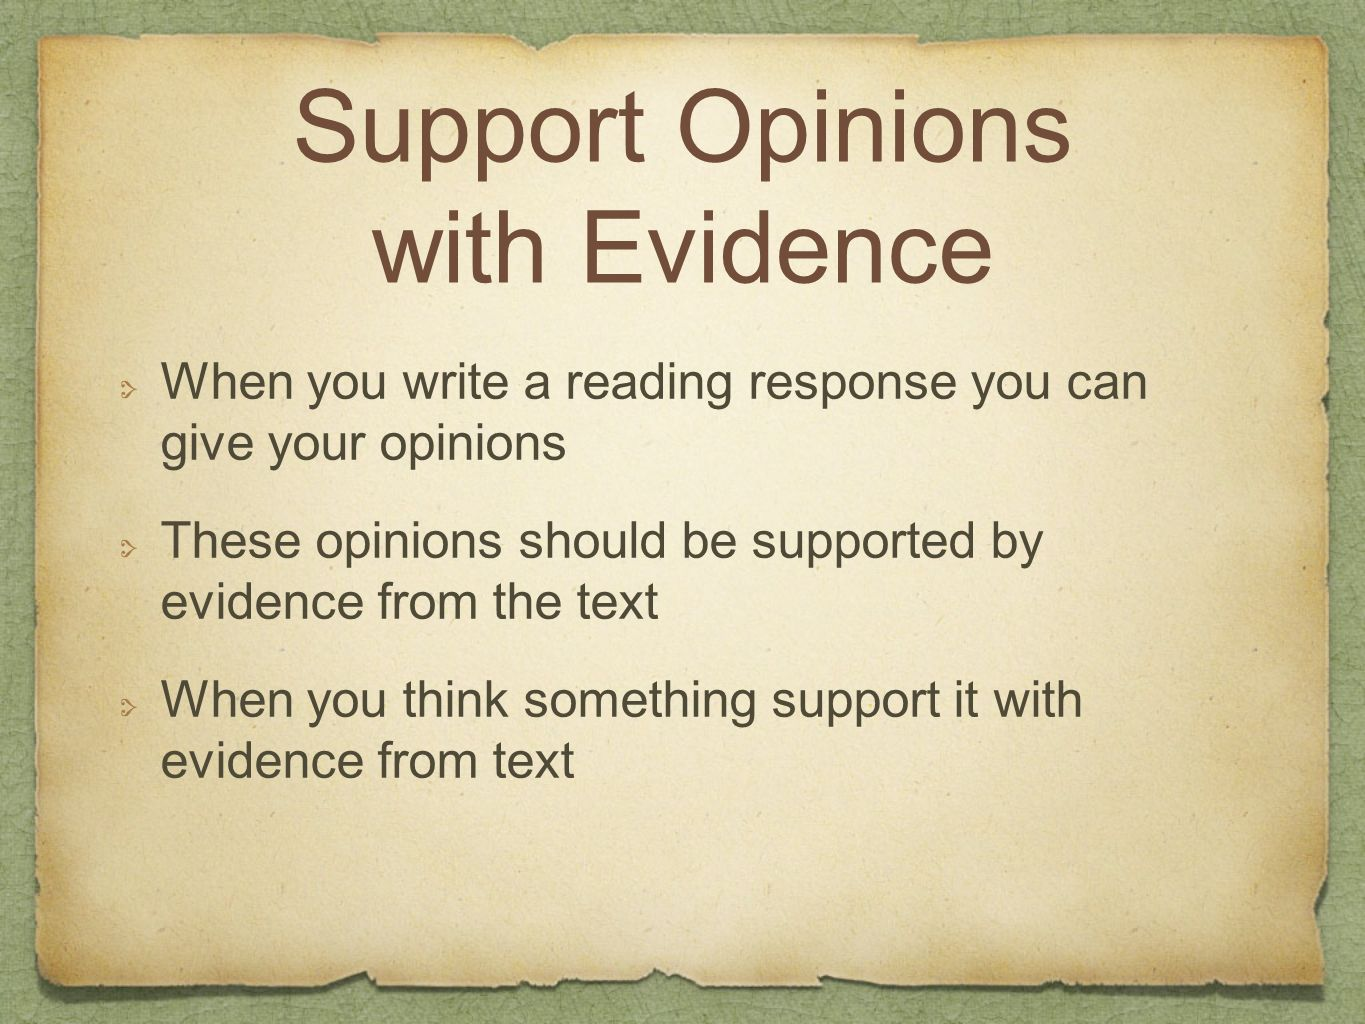 Support Opinions with Evidence